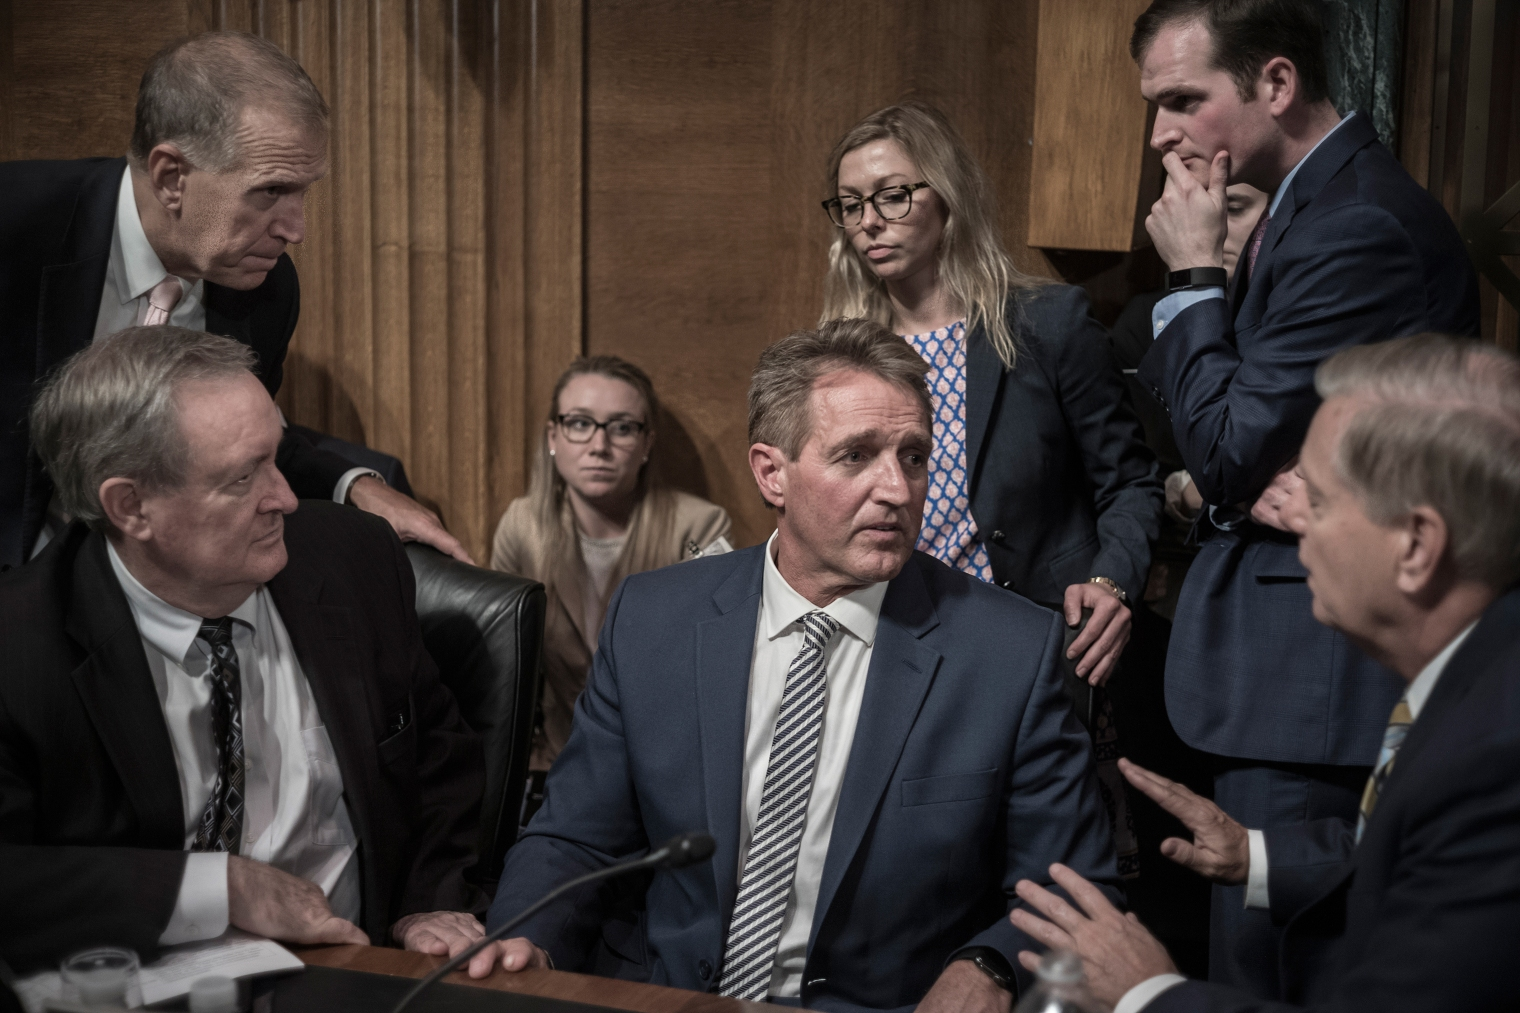 Jeff Flake, center, listens to fellow GOP Senator Lindsey Graham, right, on Sept. 28, moments after Flake called for a delay in Brett Kavanaugh's Supreme Court confirmation